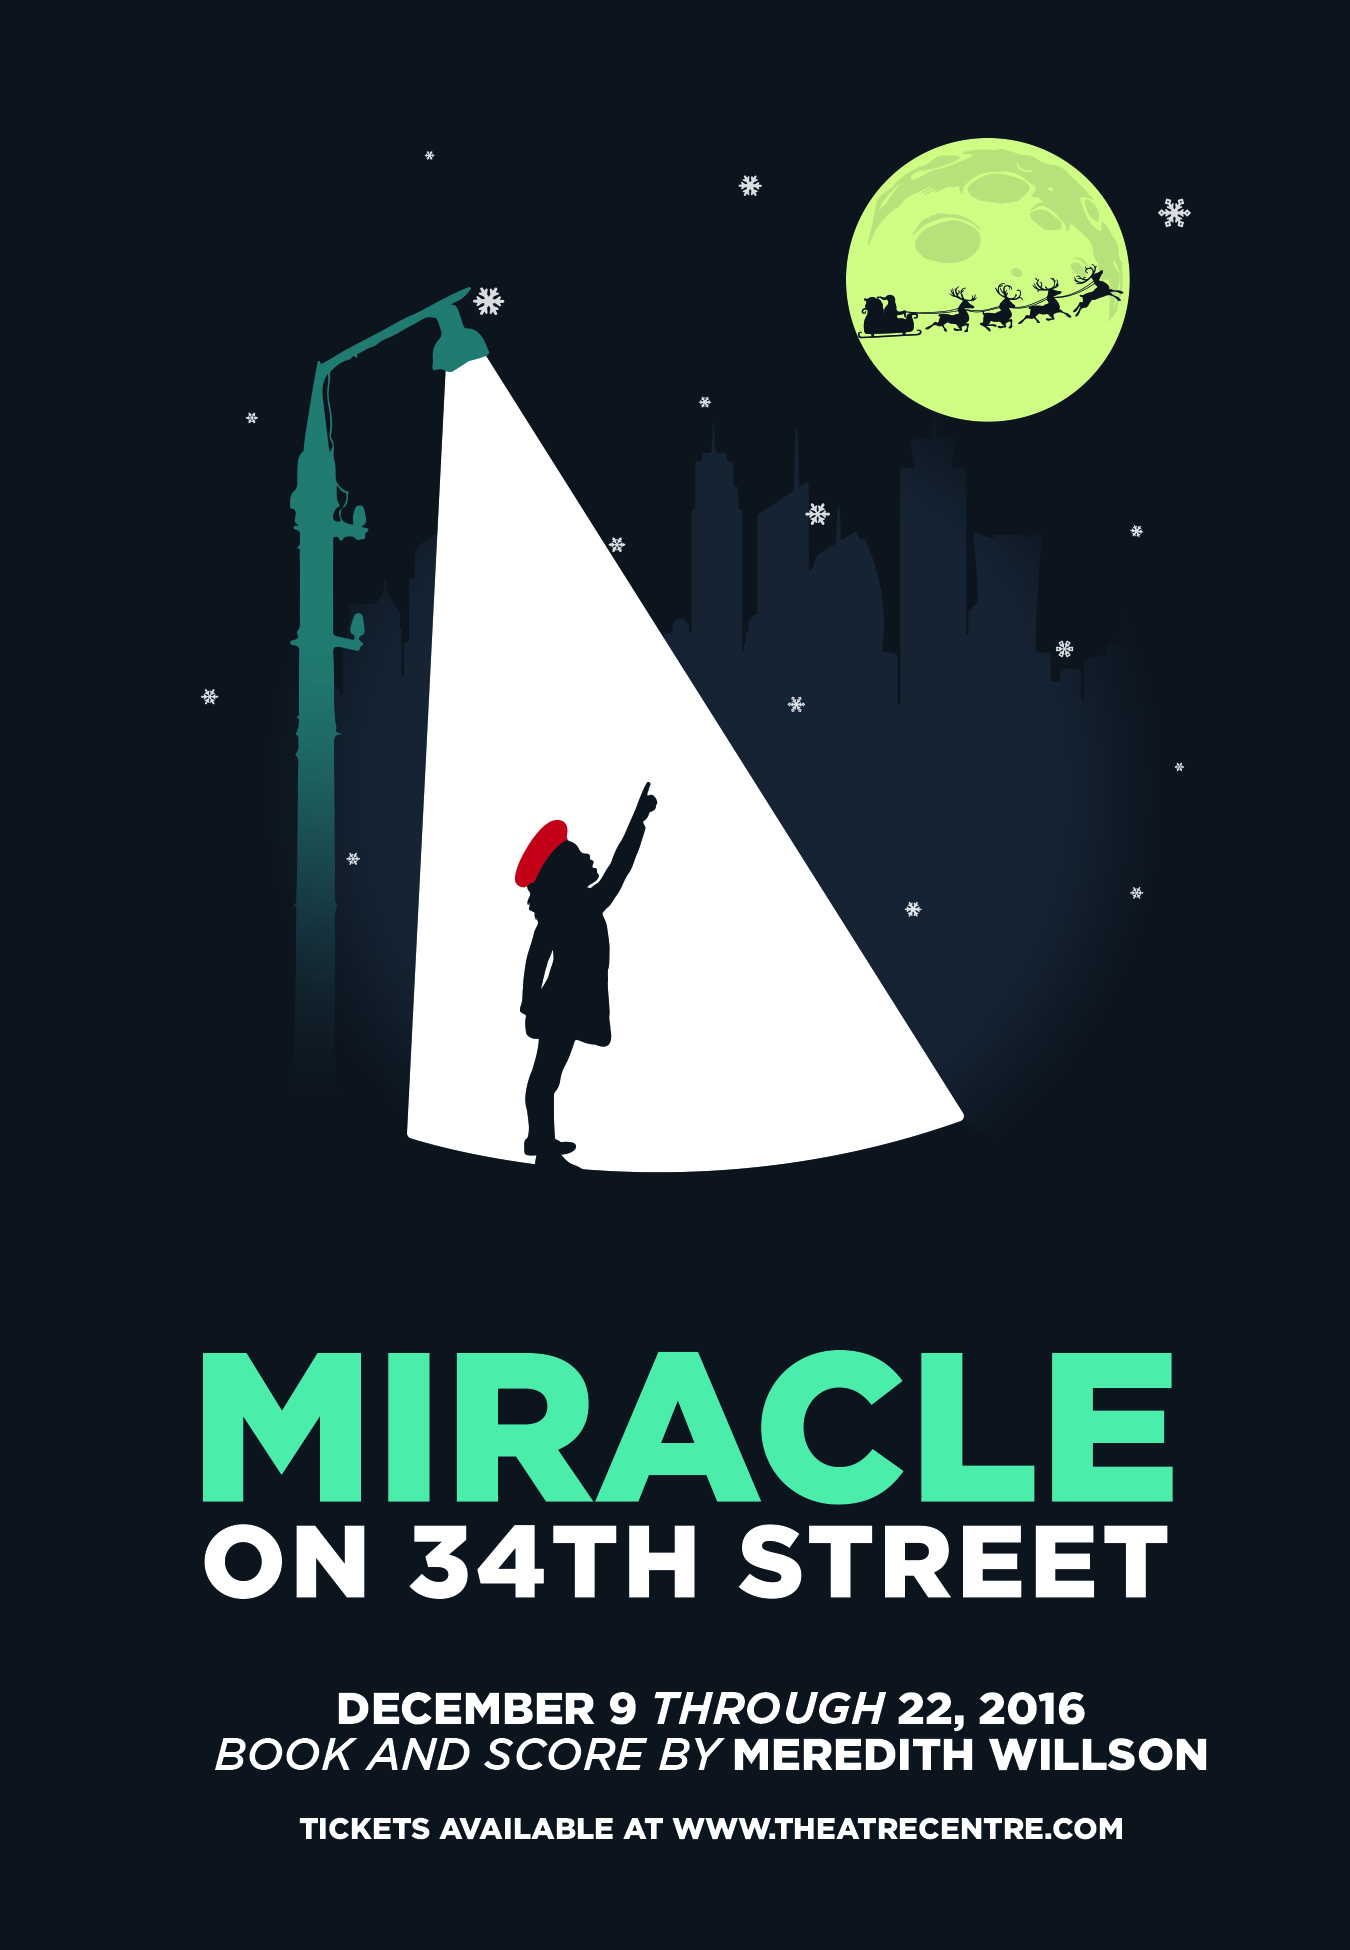 The Chattanooga Theatre Center's Miracle on 34th Street through December 23rd